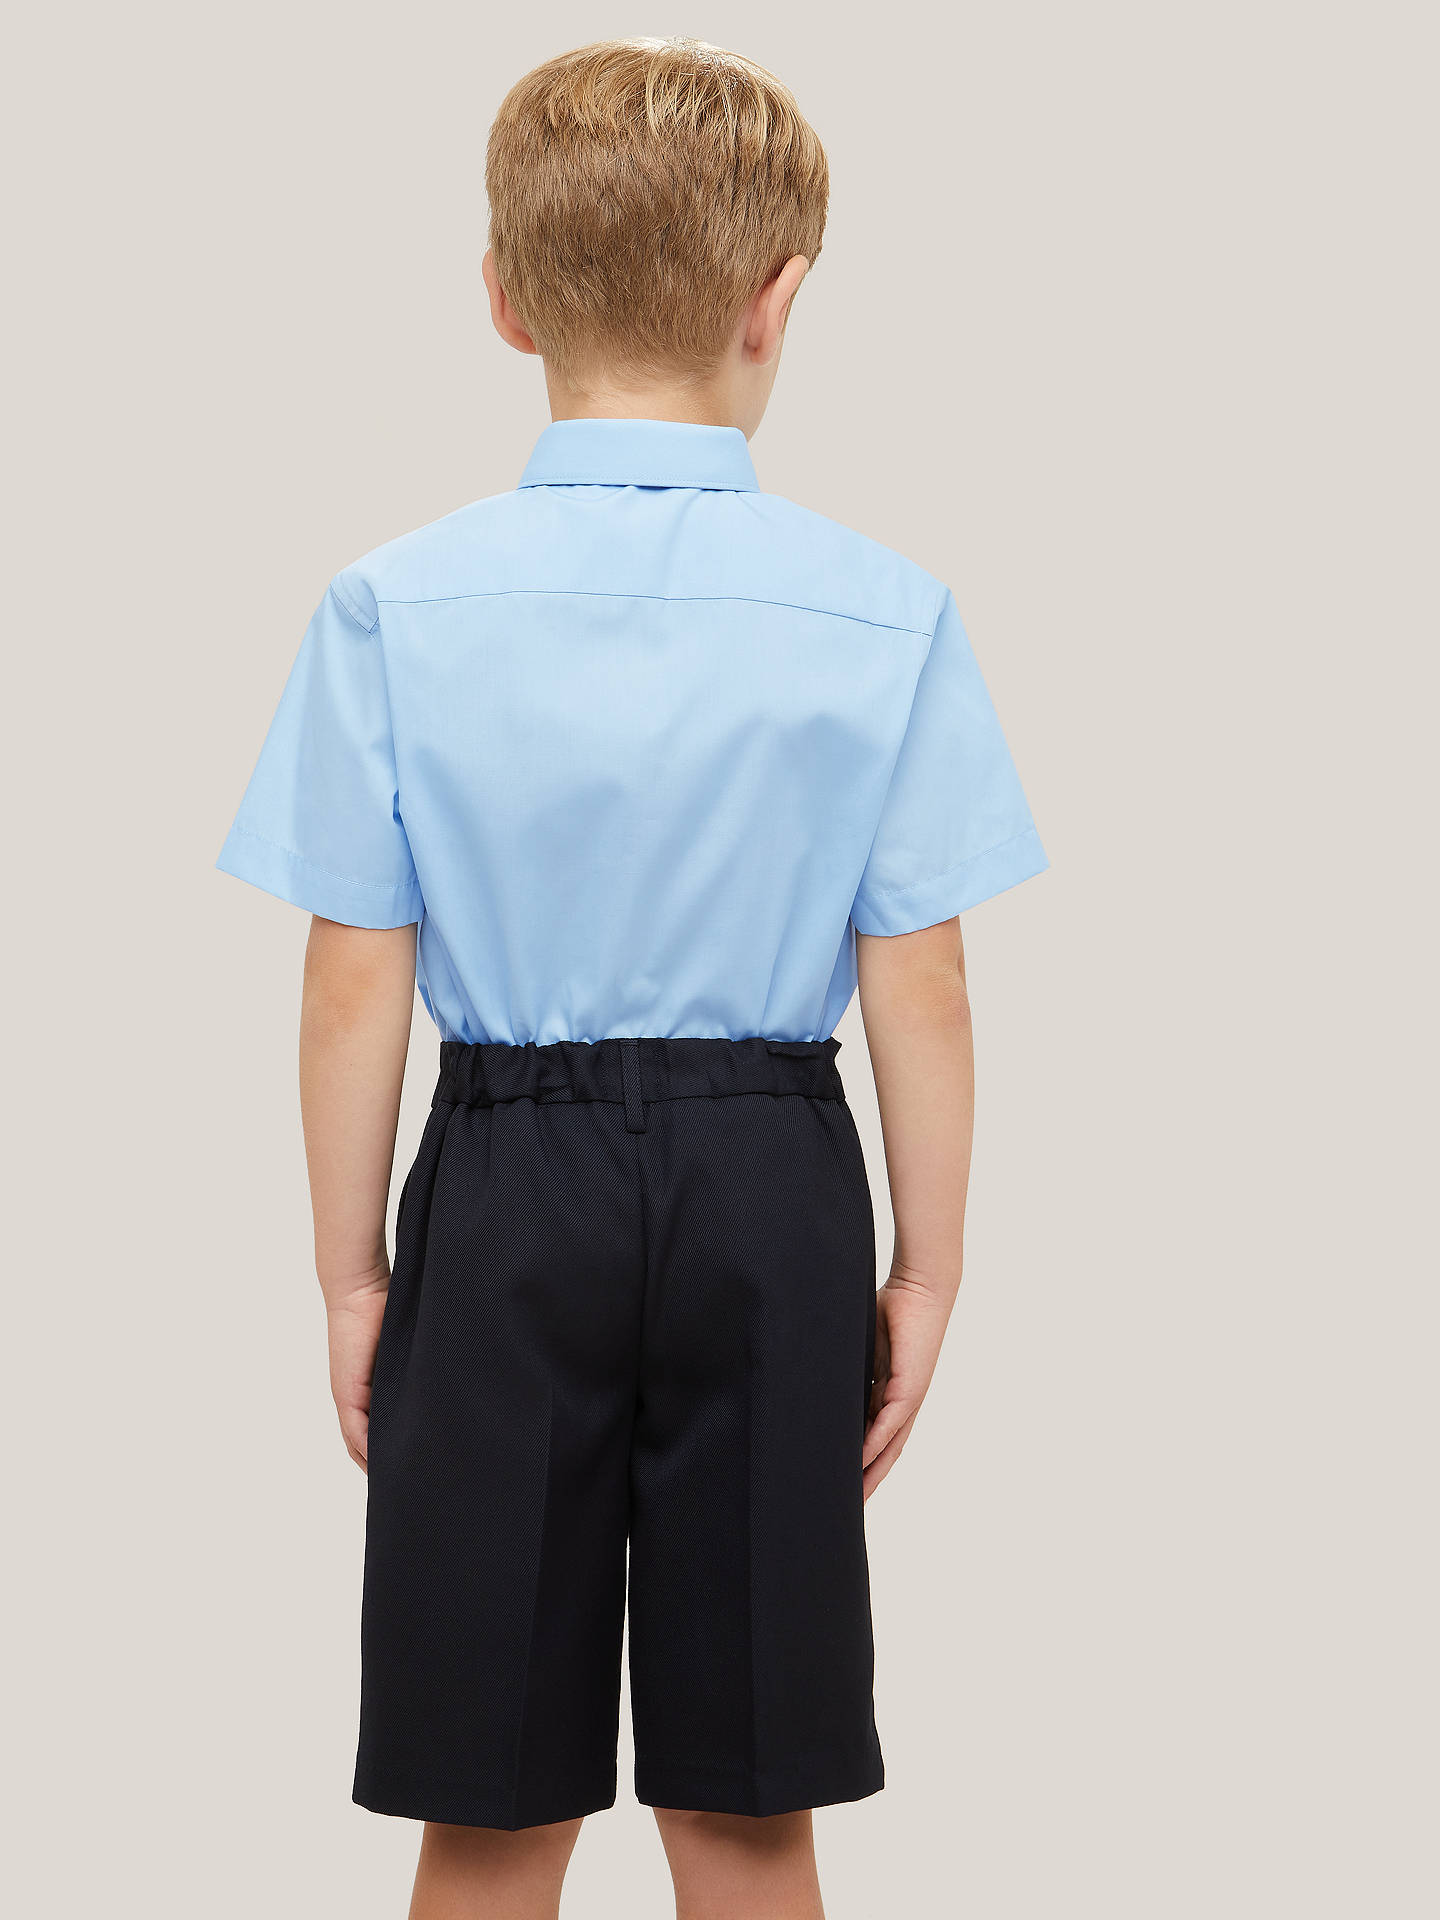 Buy John Lewis & Partners Boys' Short Sleeved Stain Resistant Easy Care Shirt, Pack of 2, Blue, 4 years Online at johnlewis.com